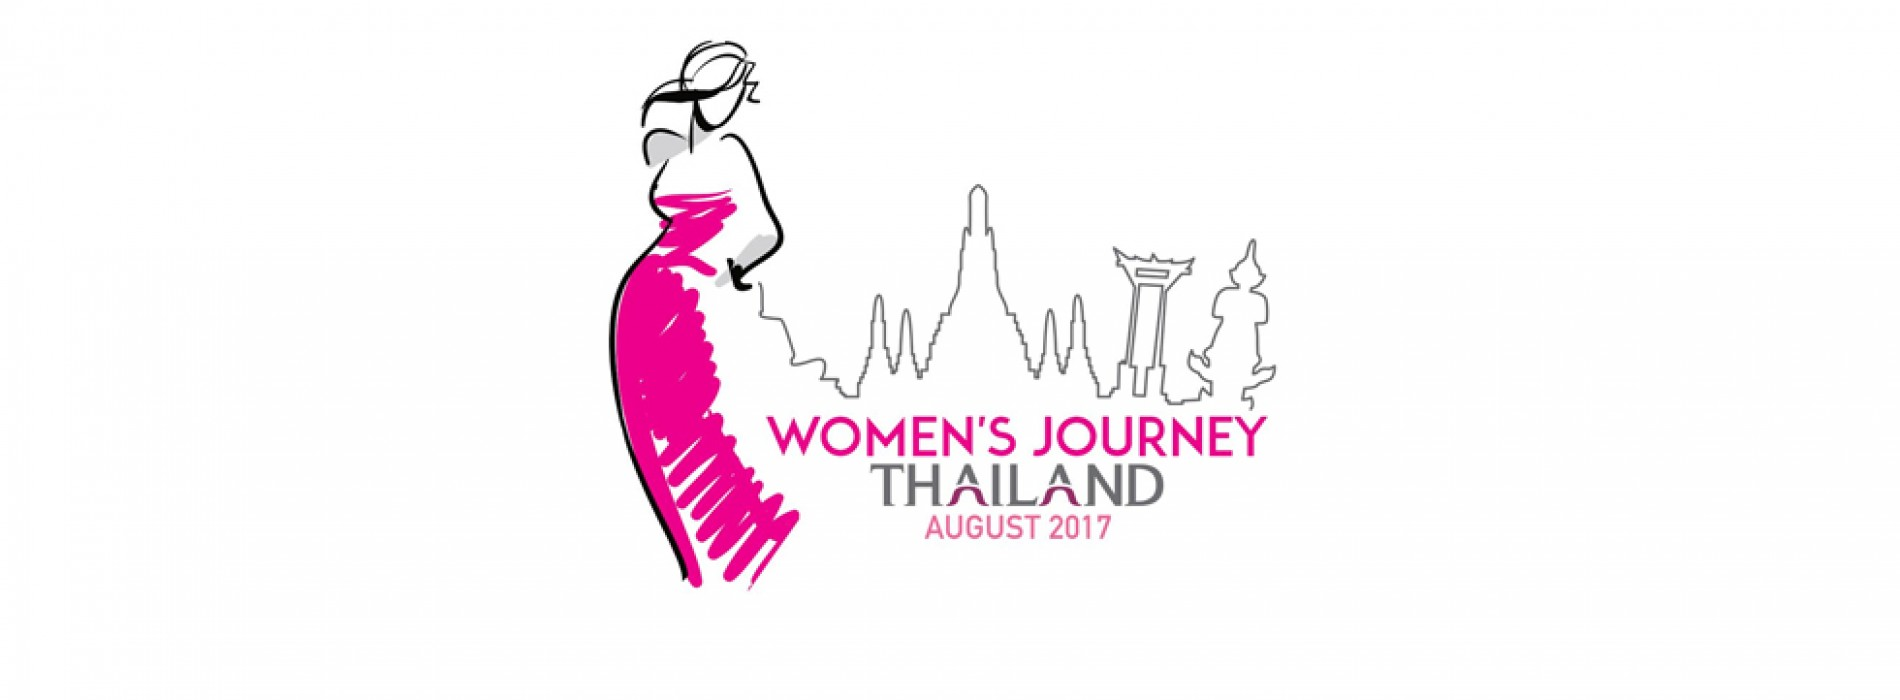 Women's Journey Thailand campaign to return with great offers throughout August 2017